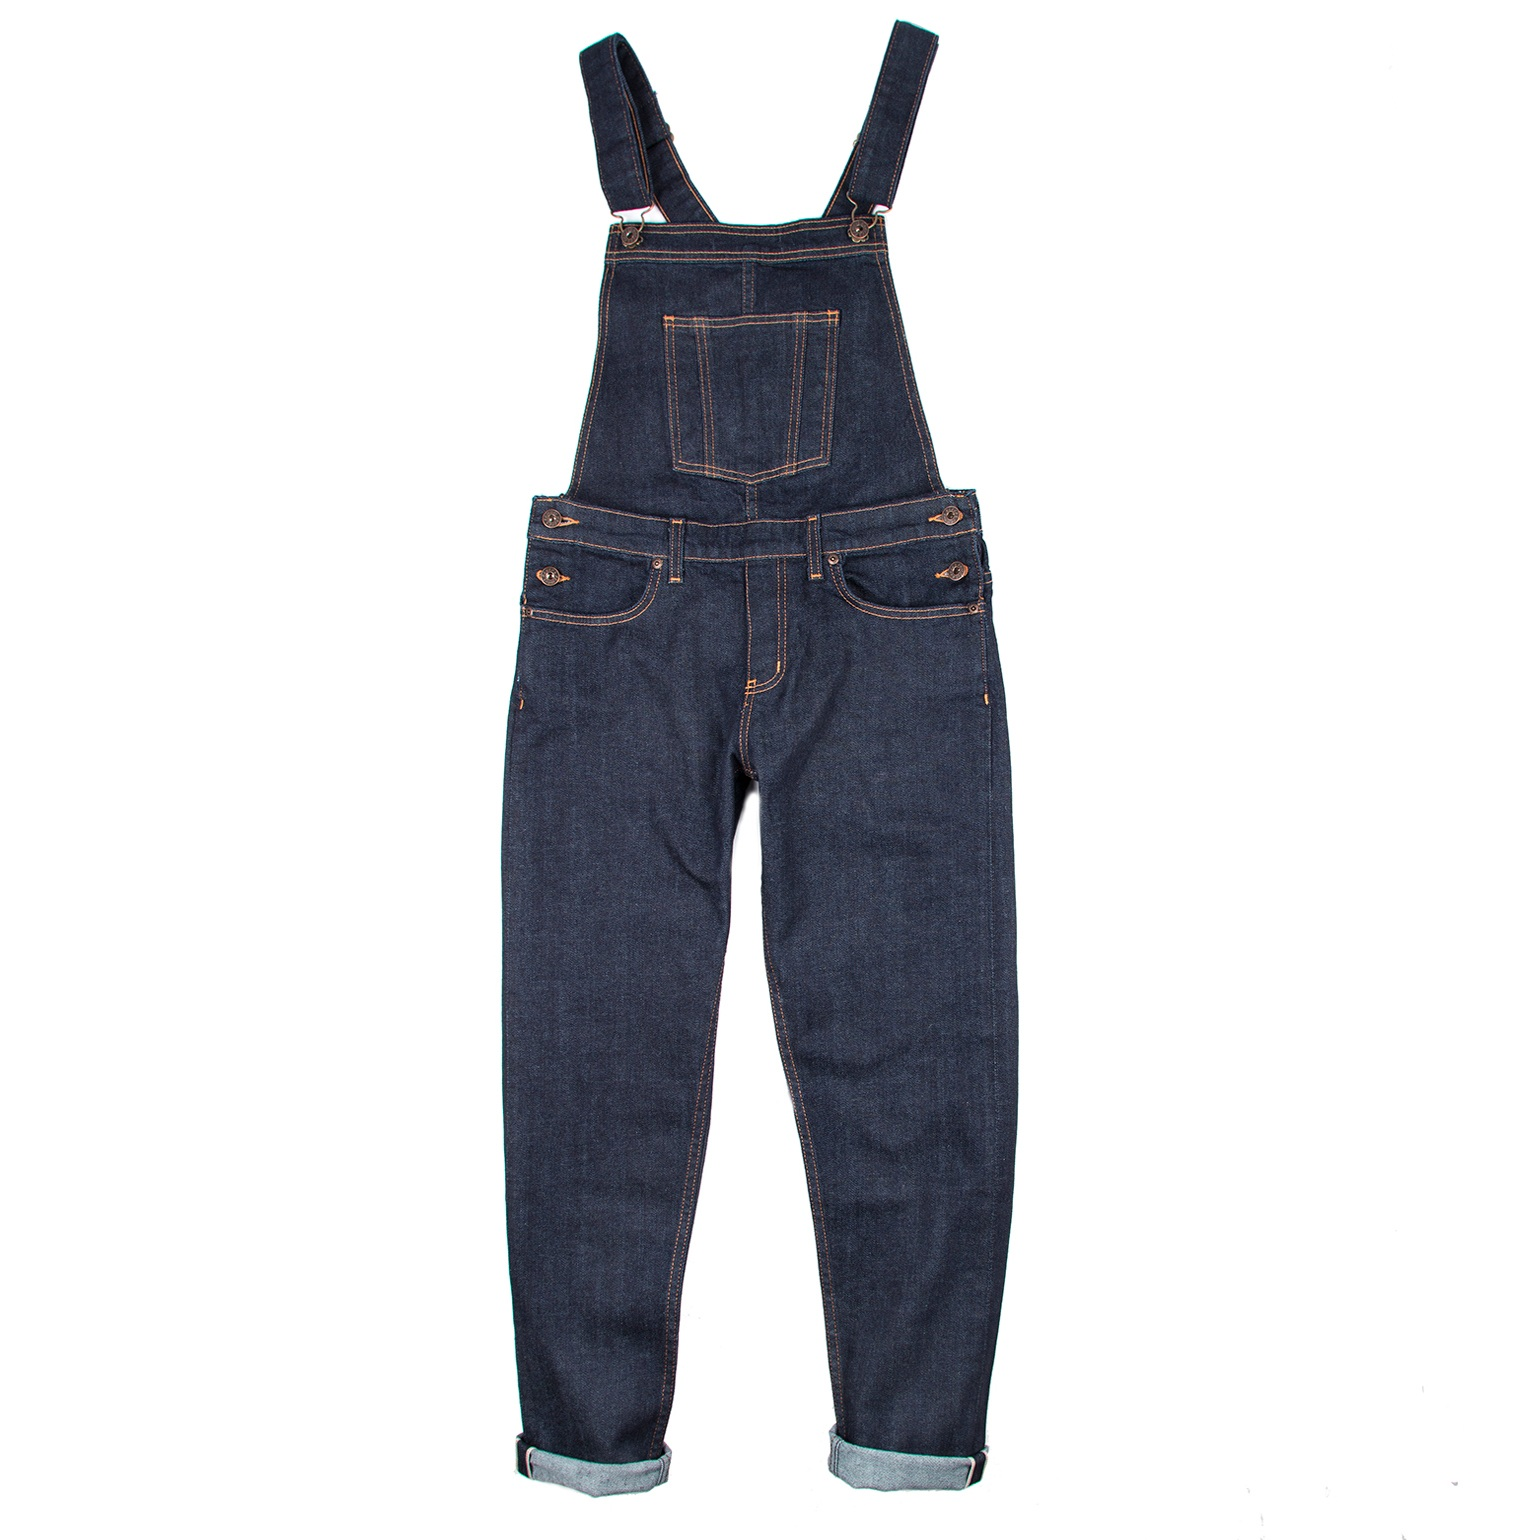 Women's Overalls 11oz Stretch Selvedge Flat View